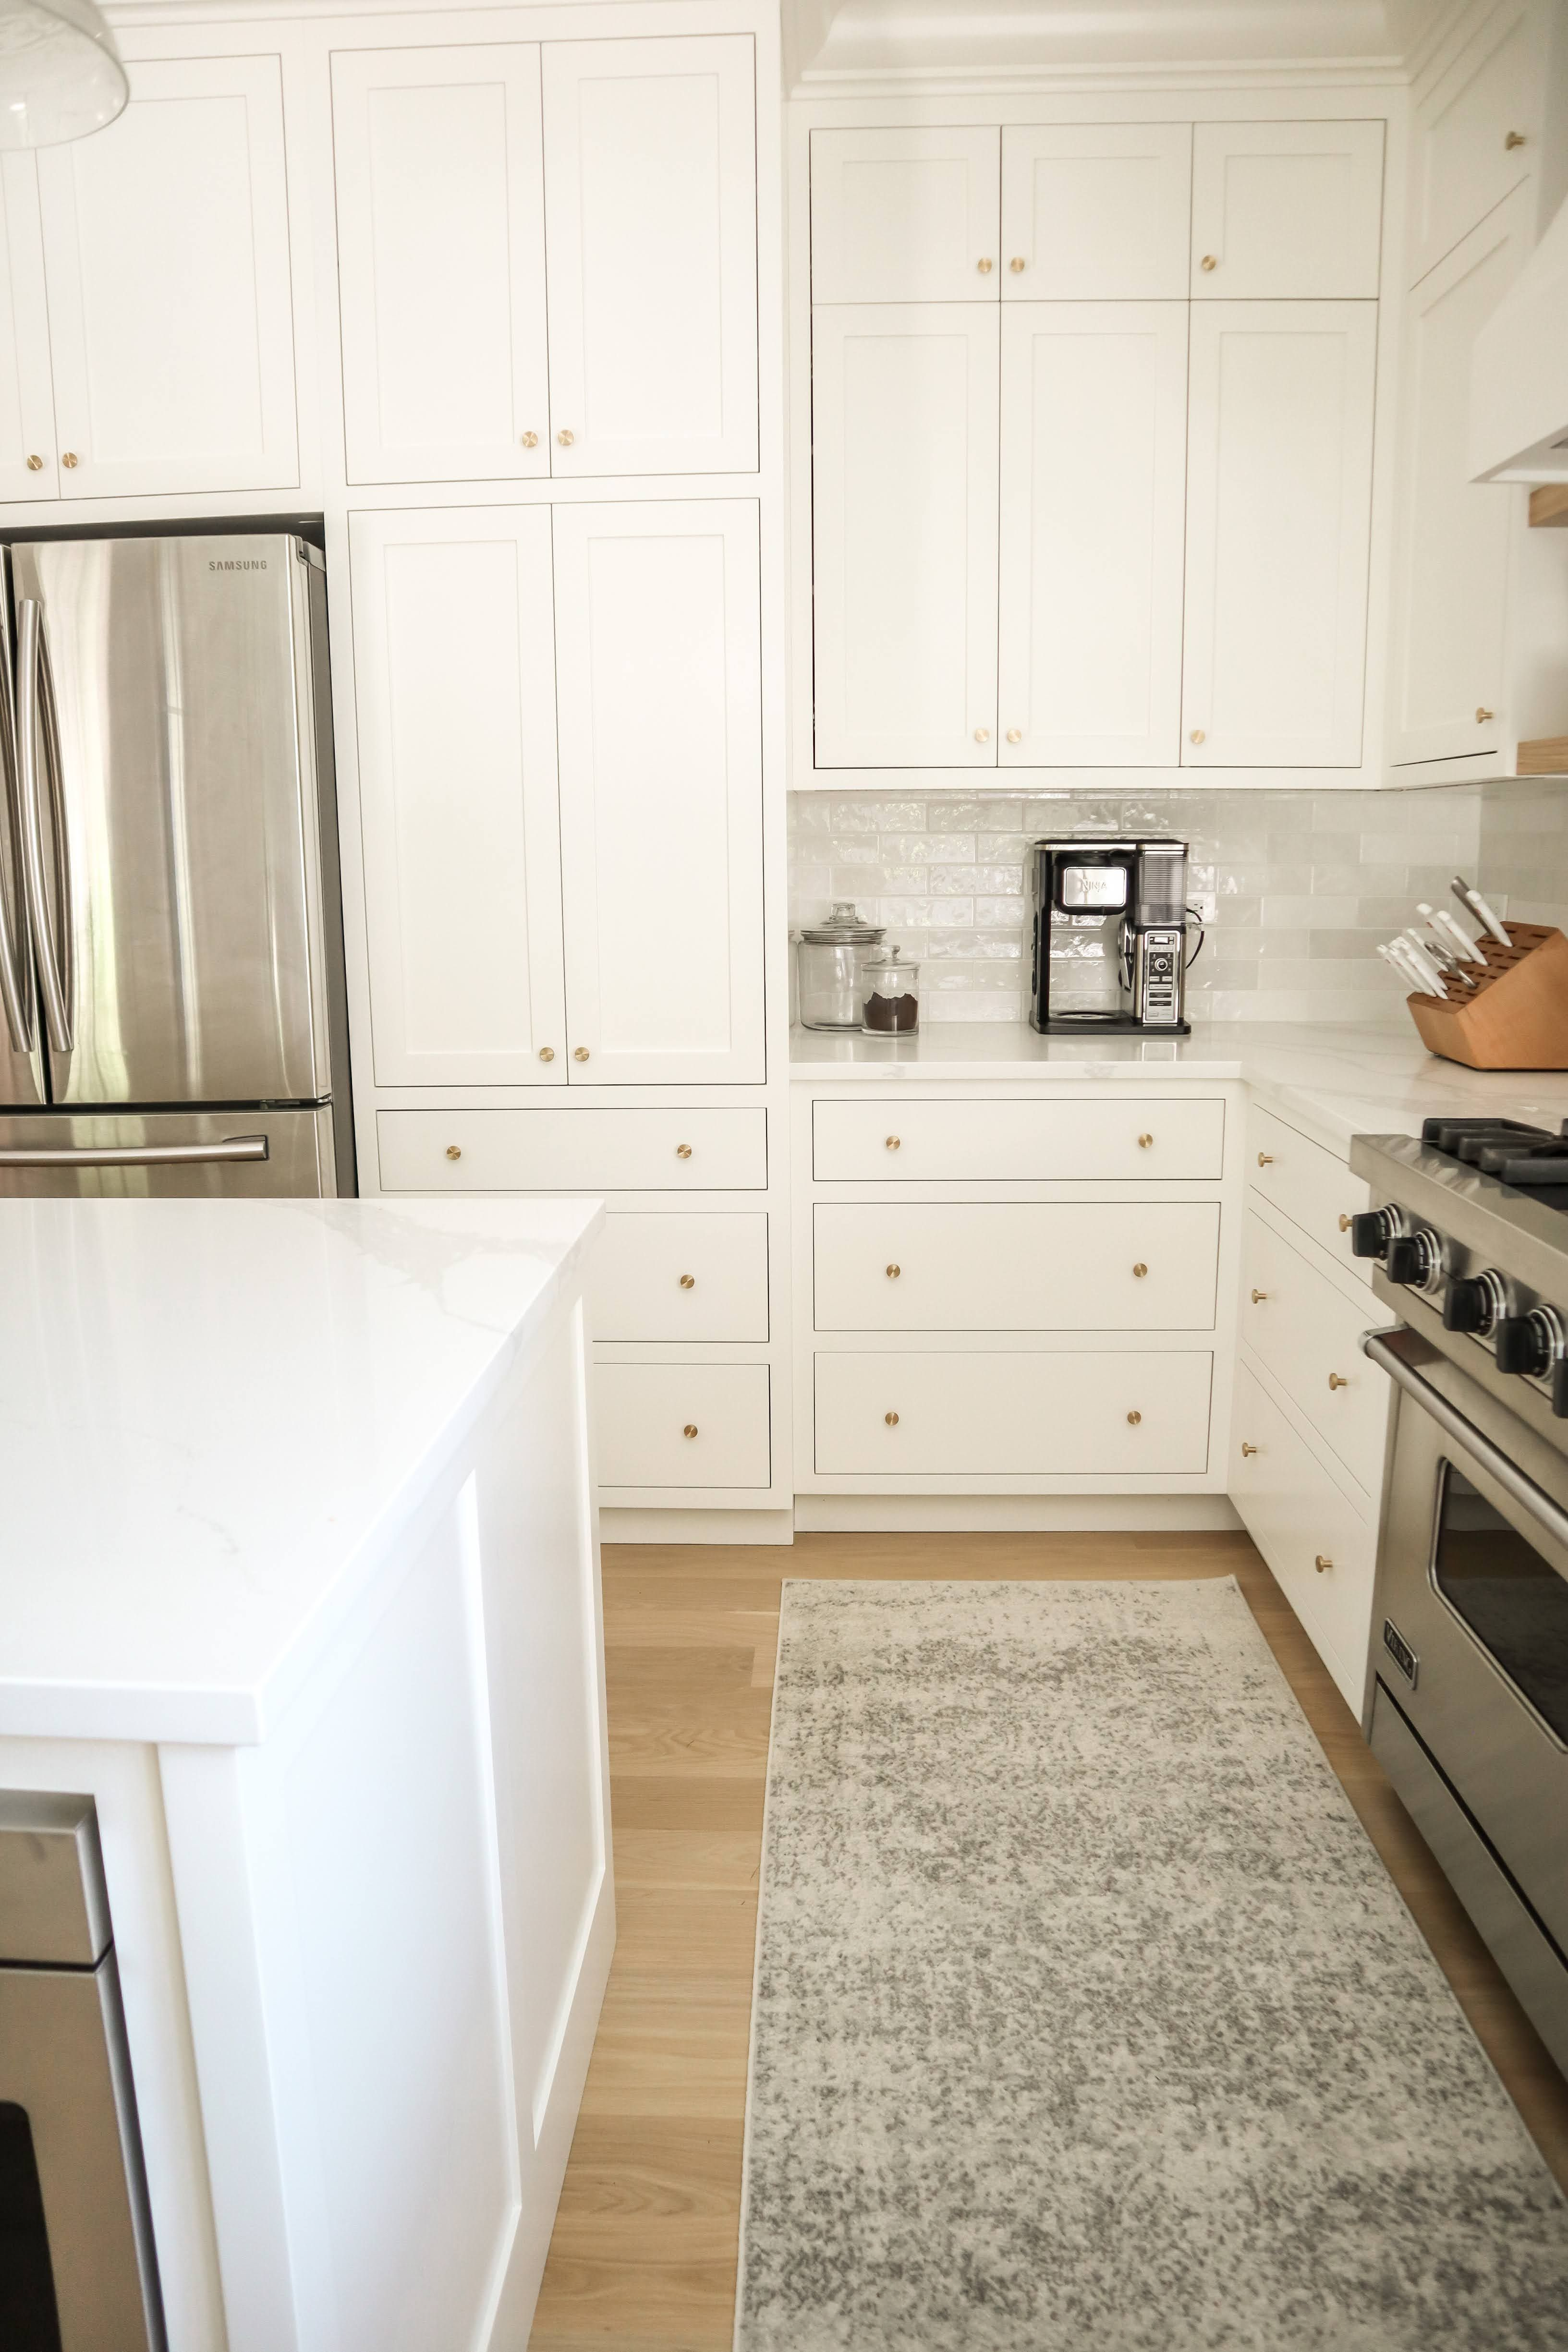 Our Kitchen Reveal In 2020 Inset Cabinets Shaker Style Cabinets Kitchen